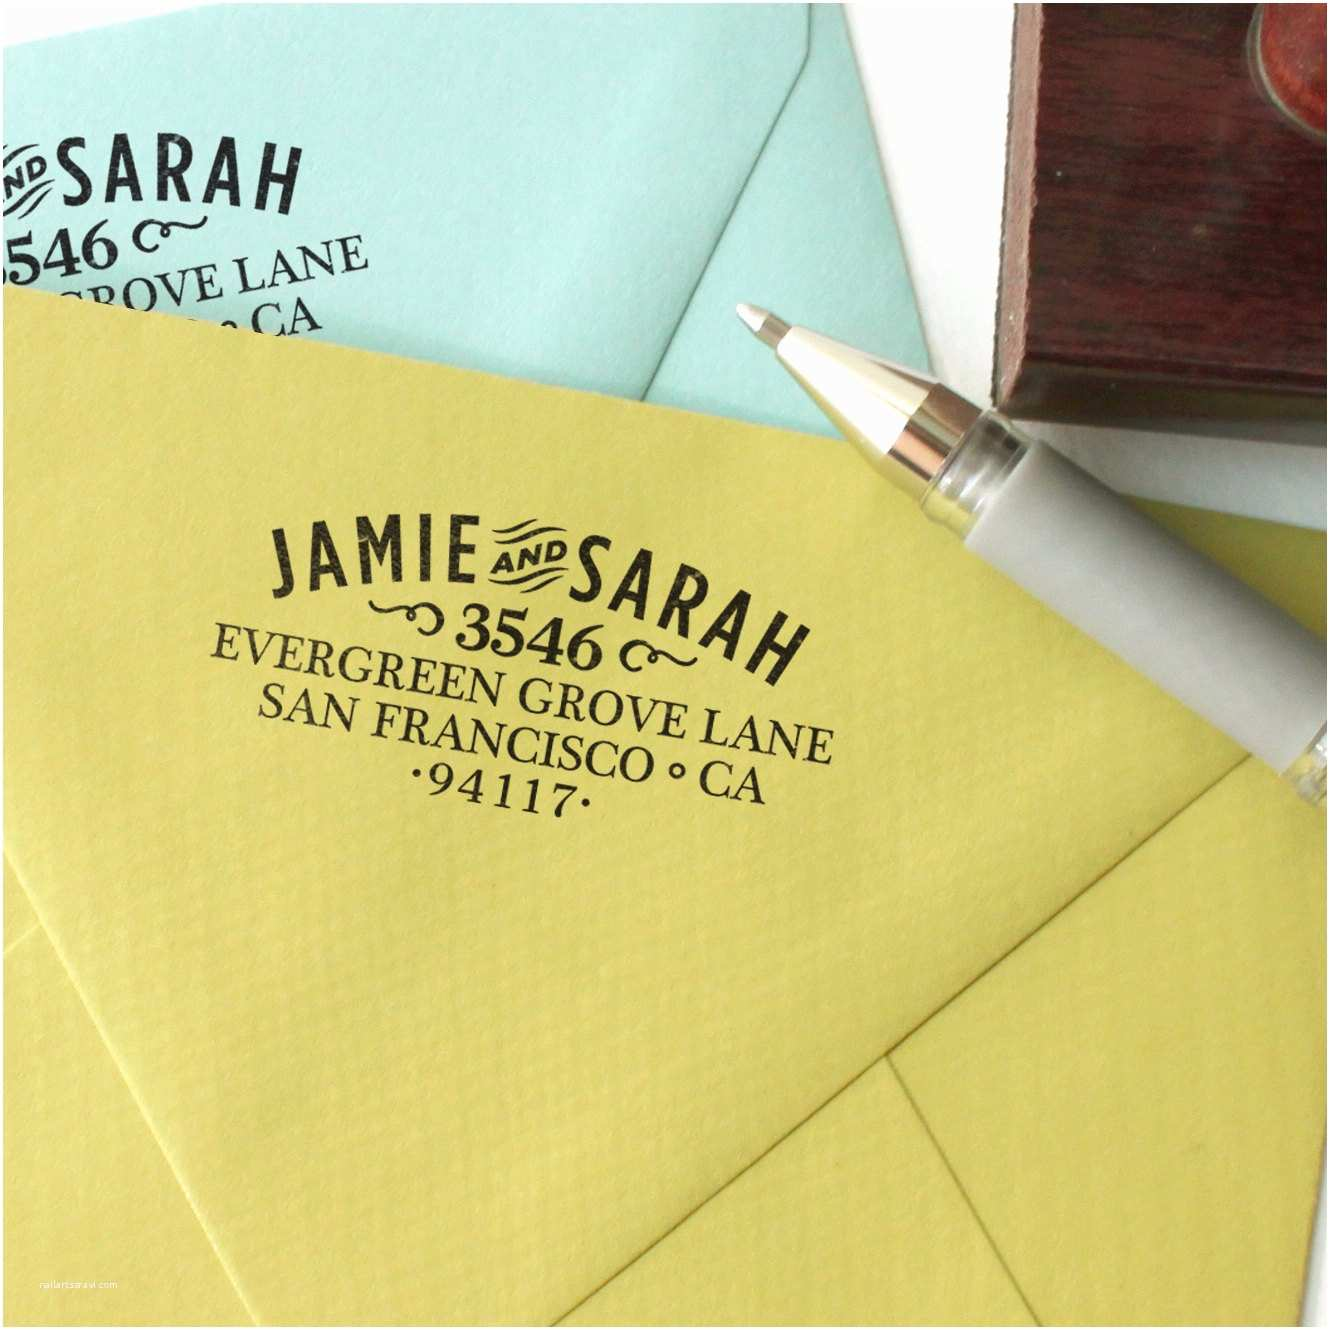 Clear Address Labels For Wedding Invitations Custom Return Address Stamp For All Those Thank You